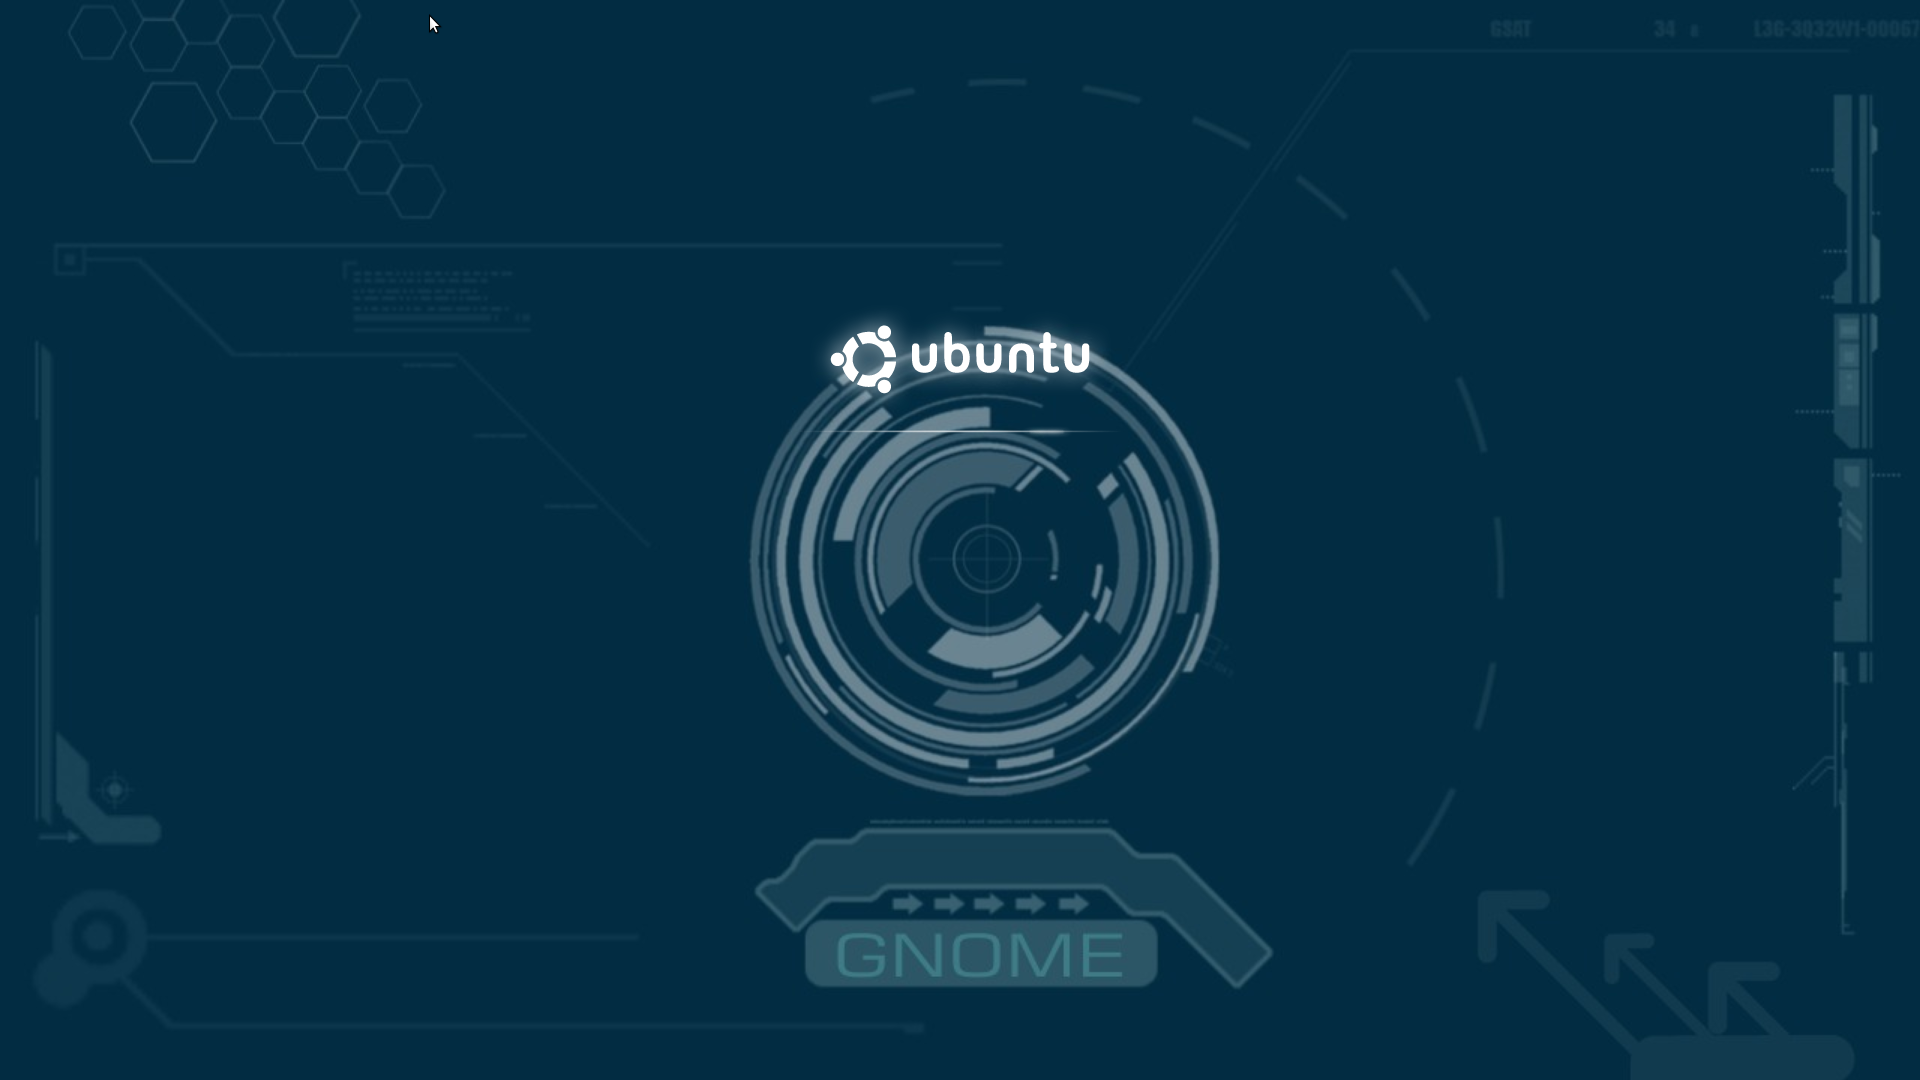 Gnome Wallpapers for Desktop (1920x1080, 0.38 Mb)